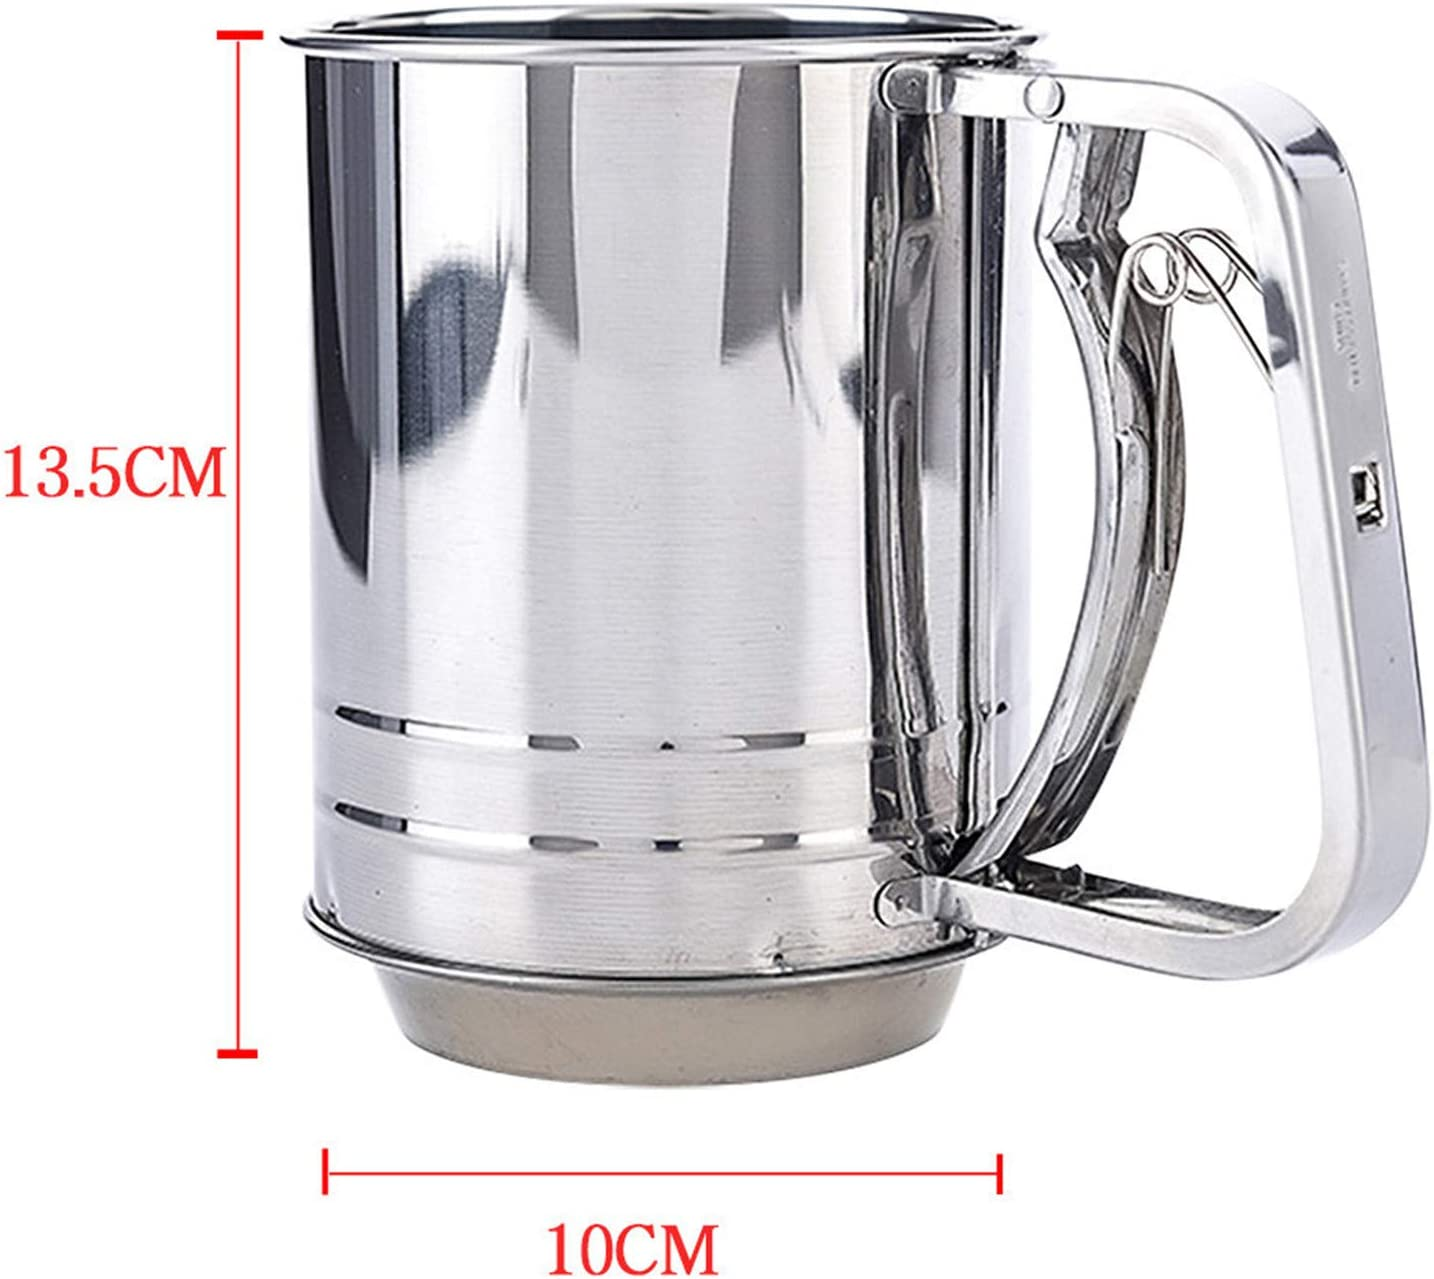 Large Capacity Stainless Steel For Baking Suitable Sieve Cup for Powdered Sugar Hand Crank Flour Sifter Stainless Steel 13.5x10cm